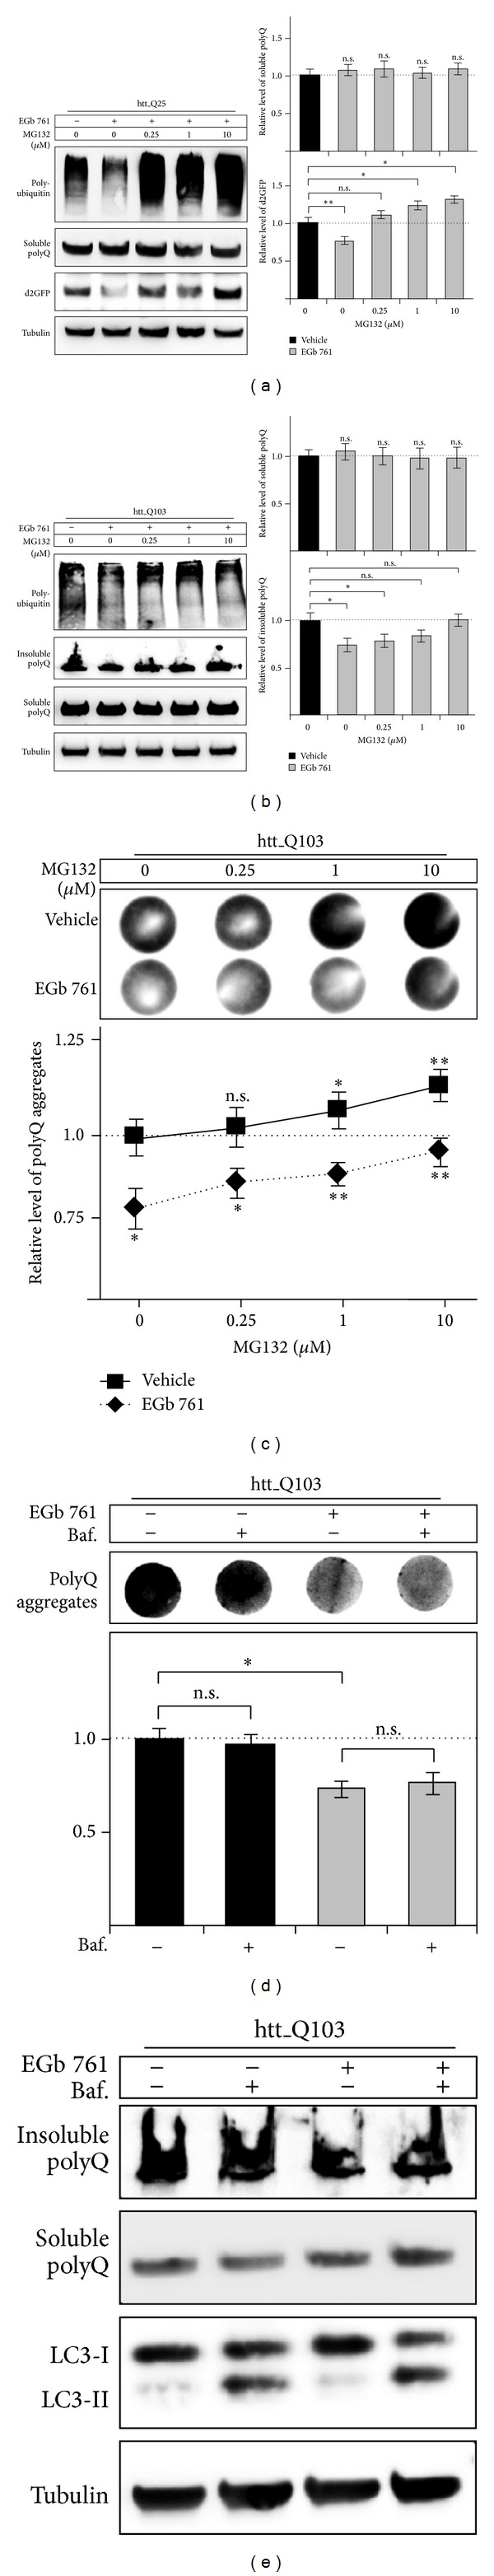 Effects of EGb 761 on degradation of polyQ proteins and polyQ aggregation. (a) d2GFP-HEK cells expressing htt_Q25 and (b–d) HEK293 cells expressing htt_Q103 were treated with EGb 761 or vehicle and subsequently chased with proteasome (MG132) or autophagy inhibitor (bafilomycin) to assess polyQ degradation and aggregation. (a) d2GFP-HEK cells expressing htt_Q25 were treated for 48 h with 150 μ g/mL EGb 761 or vehicle. Then, cells were incubated for 4 h with or without increasing concentrations of MG132. Protein levels of whole cell extracts were analyzed by immunoblotting to their corresponding antibodies. Protein levels of short-lived, unstable proteins (polyubiquitin, d2GFP) accumulated with proteasome inhibition while levels of long-lived polyQ proteins were not significantly altered. Values of d2GFP or polyQ protein of vehicle-treated cells without MG132 were arbitrarily set to 1; n = 4. (b-c) HEK293 cells expressing htt_Q103 were treated for 48 h with 150 μ g/mL EGb 761 or vehicle. Then, cells were subsequently incubated for 4 h with or without increasing concentrations of MG132. (b) Whole cell extracts were subjected to a filter retardation assay to assess polyQ aggregates, induced by pharmacologic proteasome inhibition. For the detection of aggregates of polyQ proteins trapped on nitrocellulose membrane an anti-eGFP antibody was used. Densitometric values of vehicle-treated cells without MG132 were arbitrarily set to 1; n = 5. (c) Protein levels of whole cell extracts (samples from b) were analyzed by immunoblotting to their corresponding antibodies. Protein levels of unstable, misfolded polyQ proteins accumulated with proteasome inhibition while levels of stable, soluble polyQ proteins were not altered. Values of soluble or insoluble polyQ proteins of vehicle-treated cells without MG132 were arbitrarily set to 1; n = 3. (d) HEK293 cells expressing htt_Q103 were treated for 48 h with 150 μ g/mL EGb 761 or vehicle. Then, cells were subsequently incubated for 3 